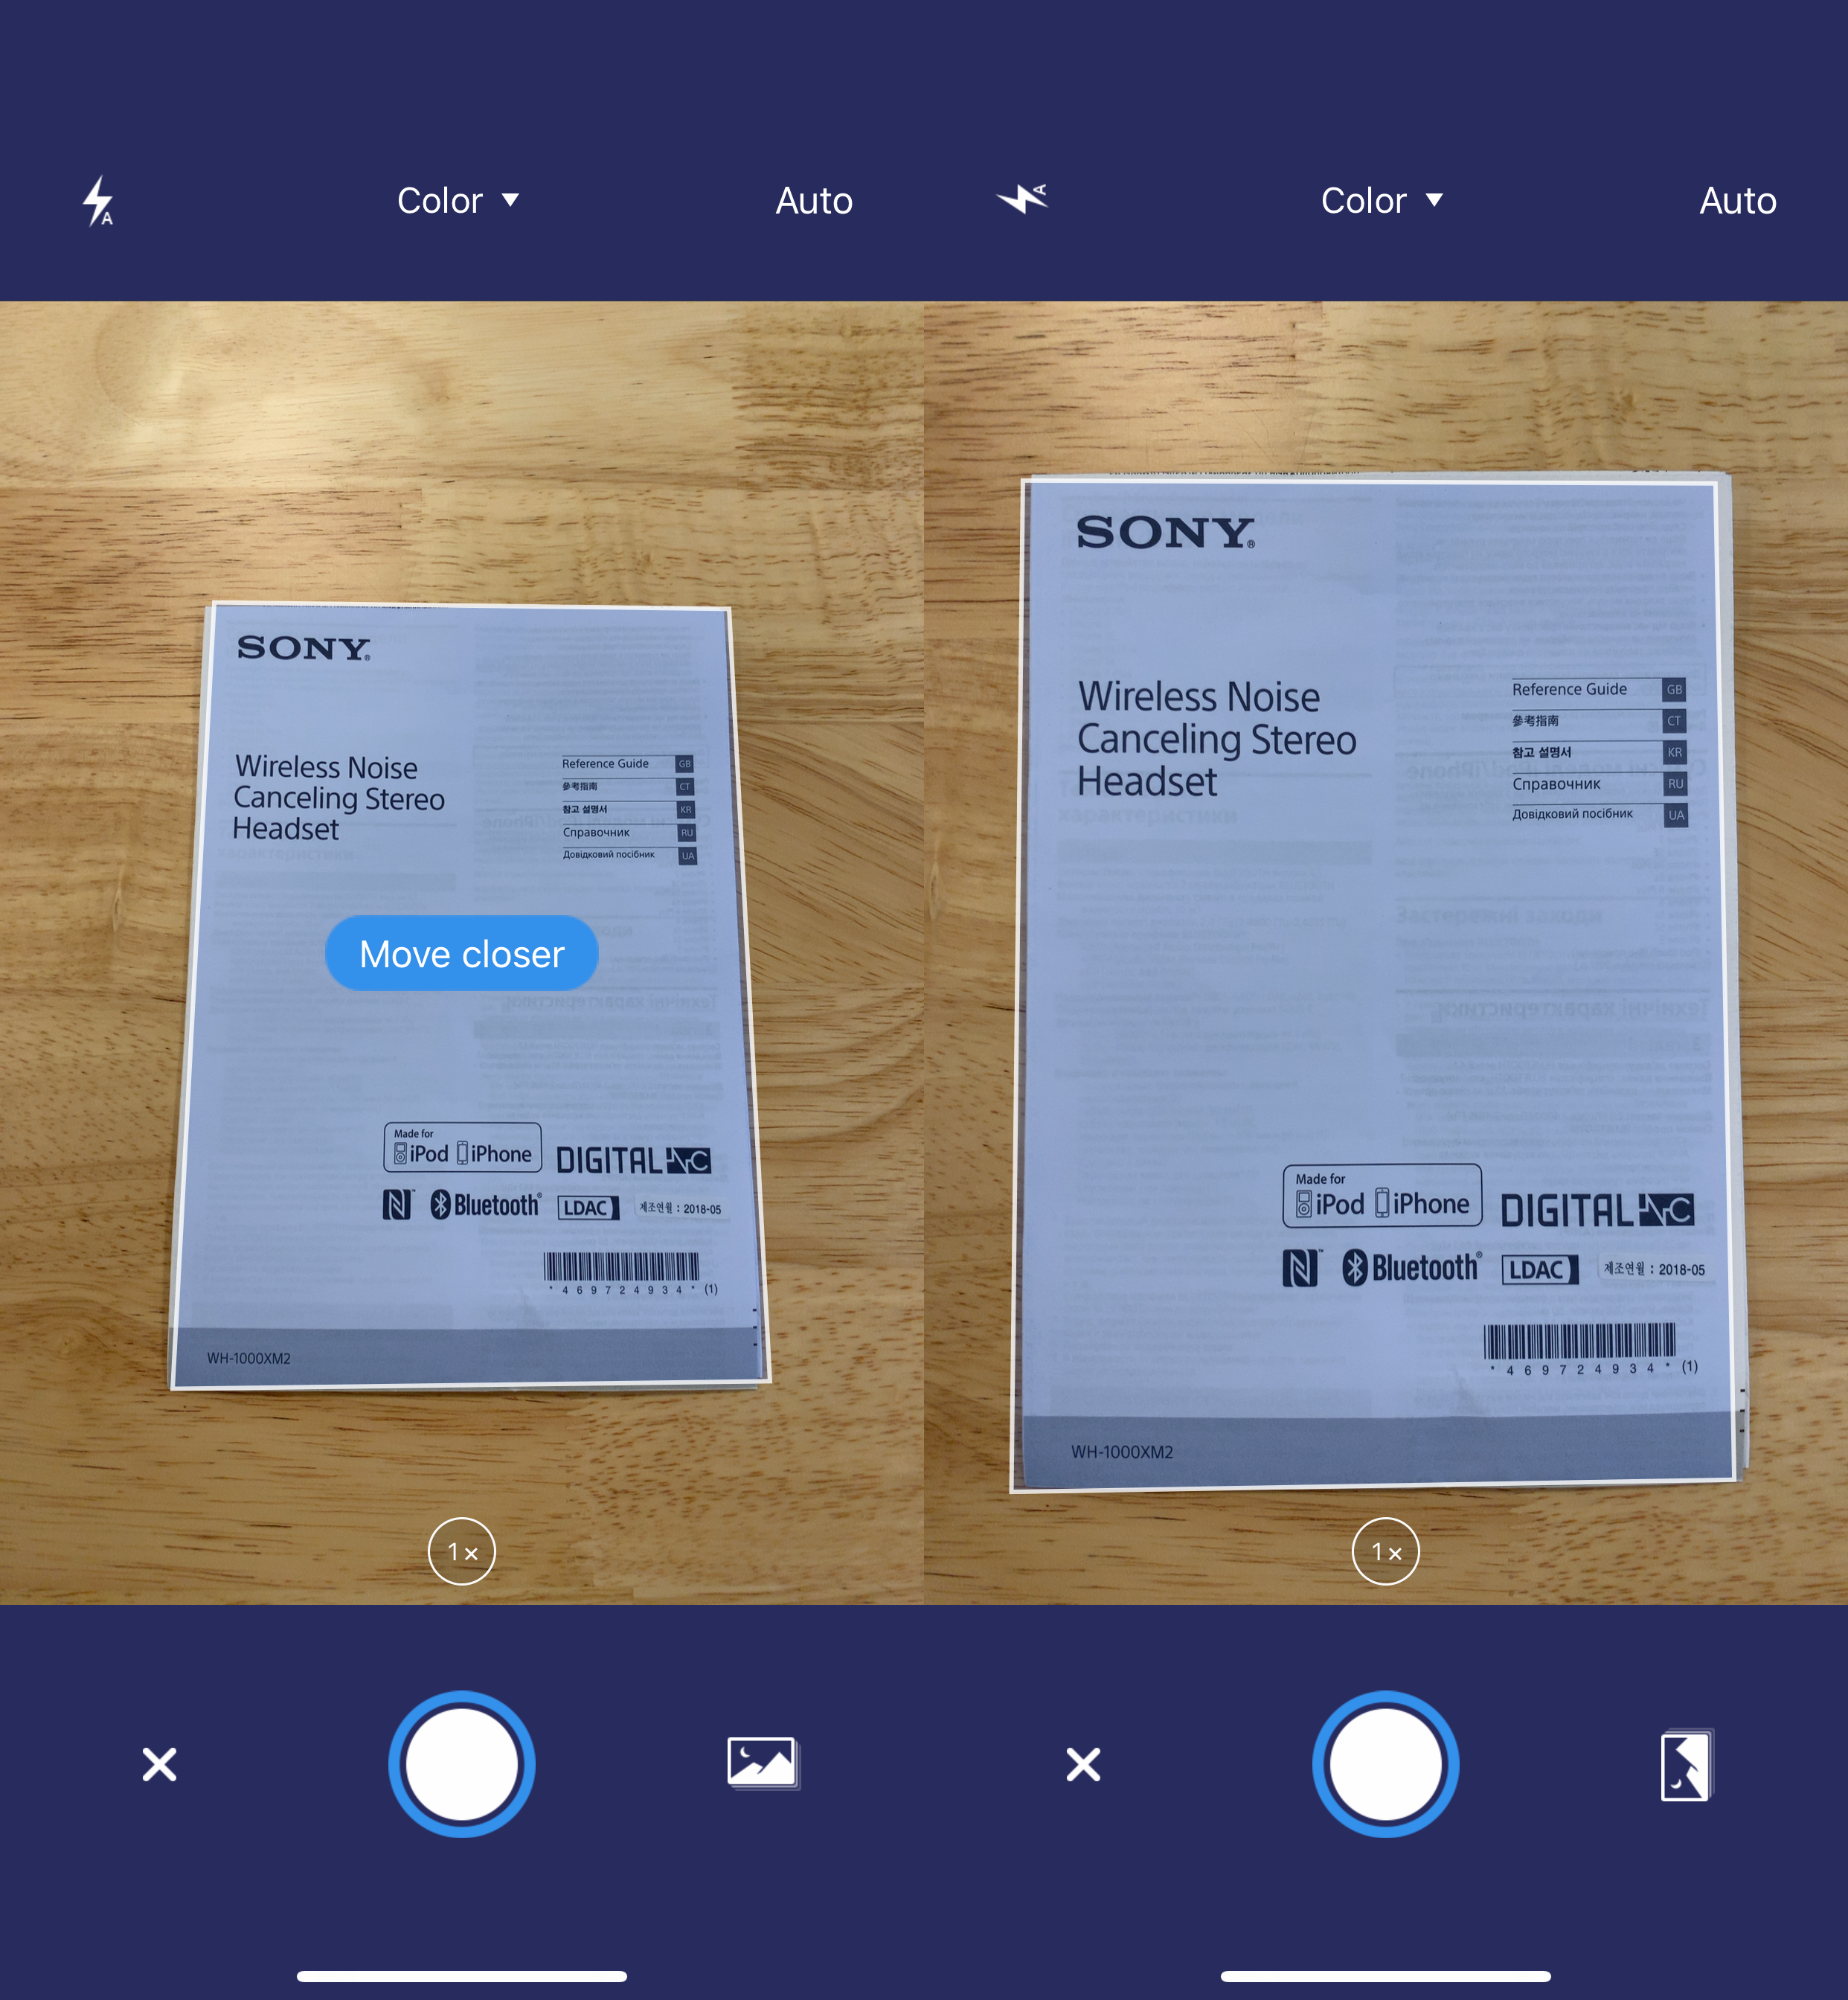 How to scan and store documents on iPhone or iPad | Readdle